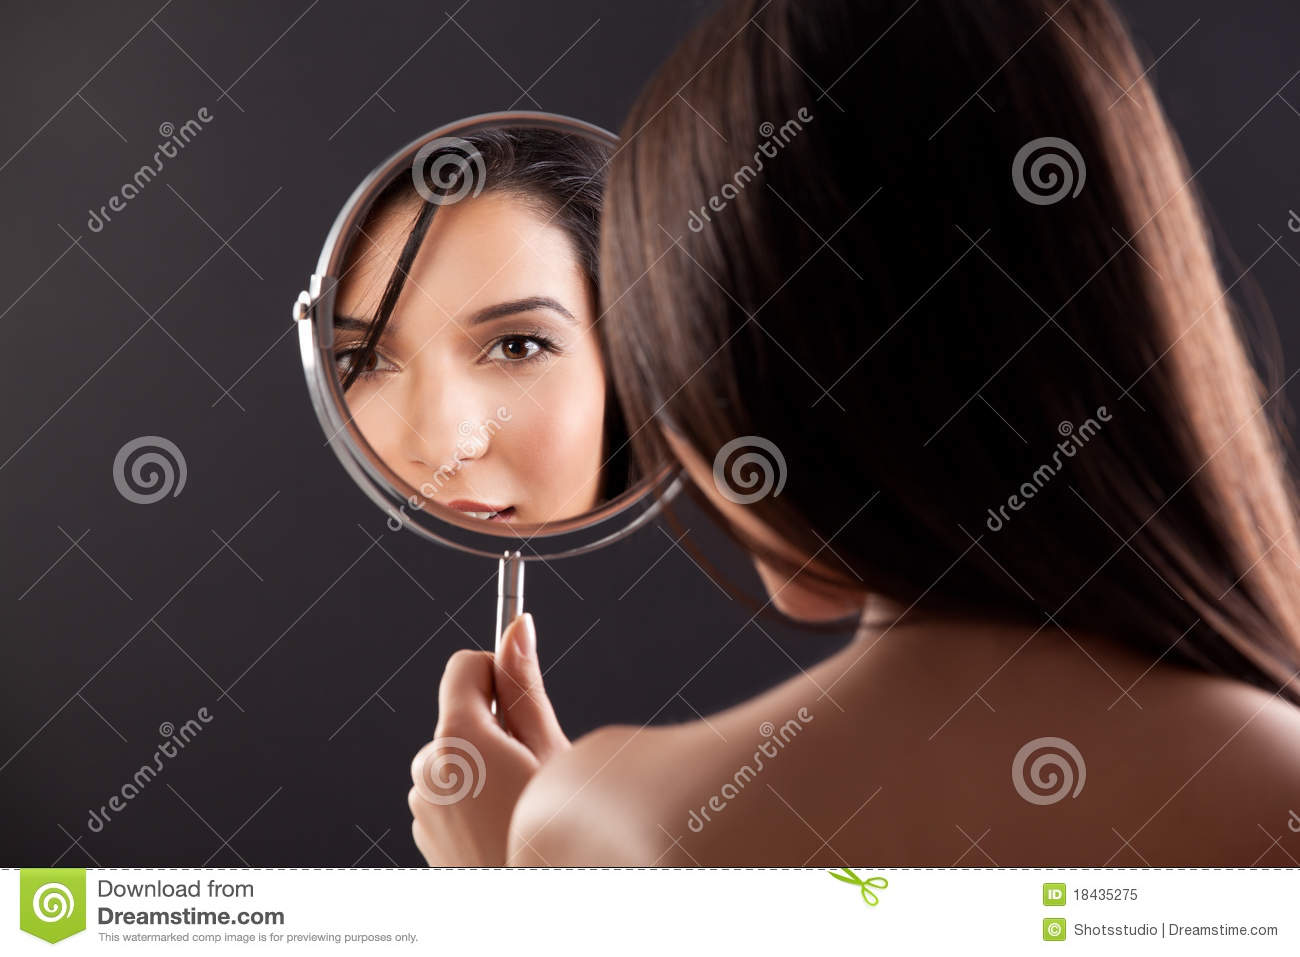 Young woman looking into a mirror, smiling.